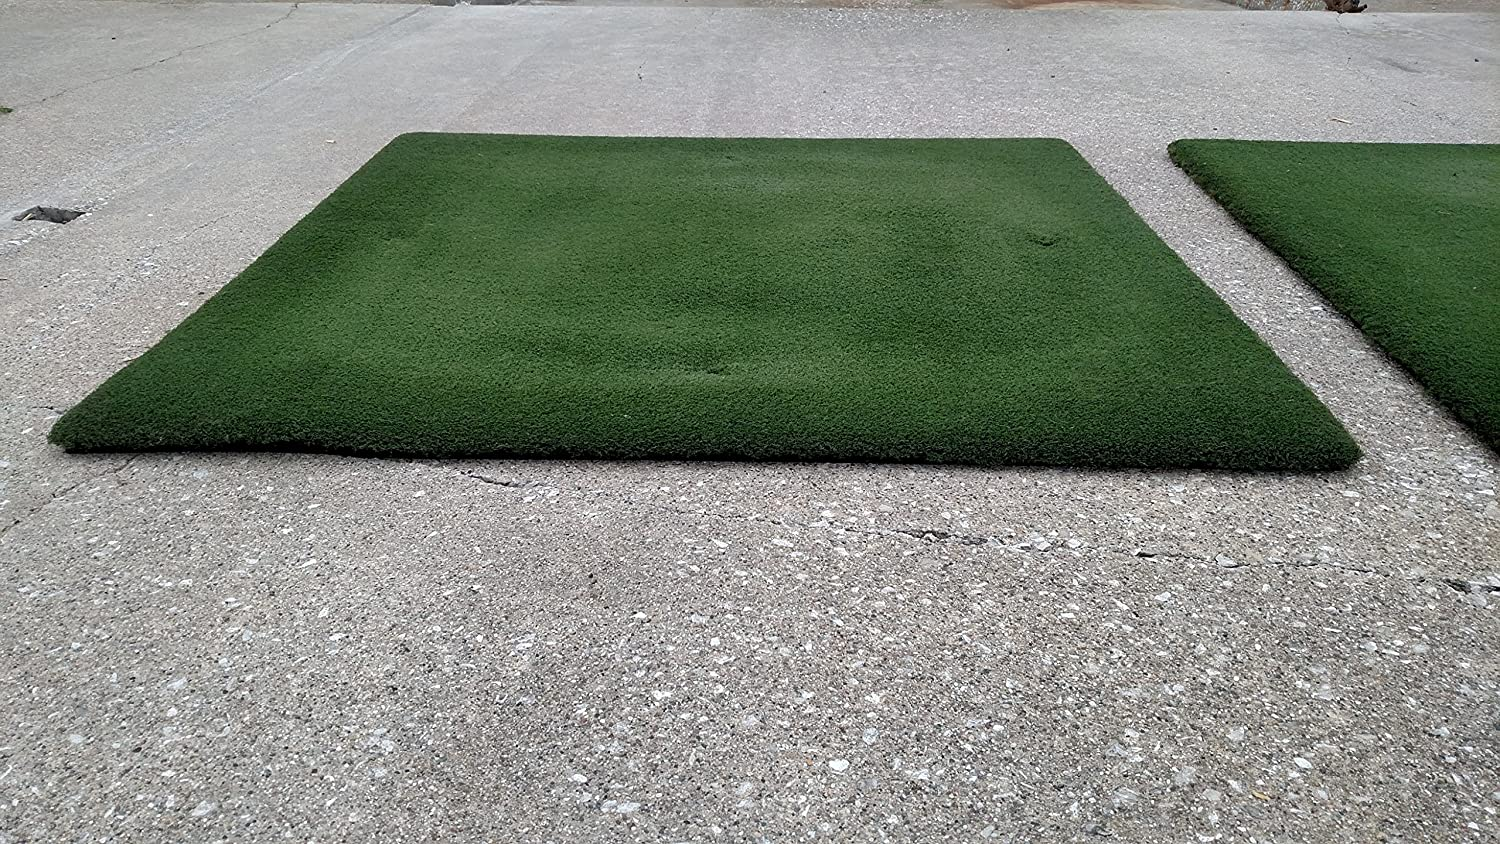 golf mats team bay green mlb practice from shop sports recreation york pin x products new durapro now w nfl hitting packers l click mets mat to